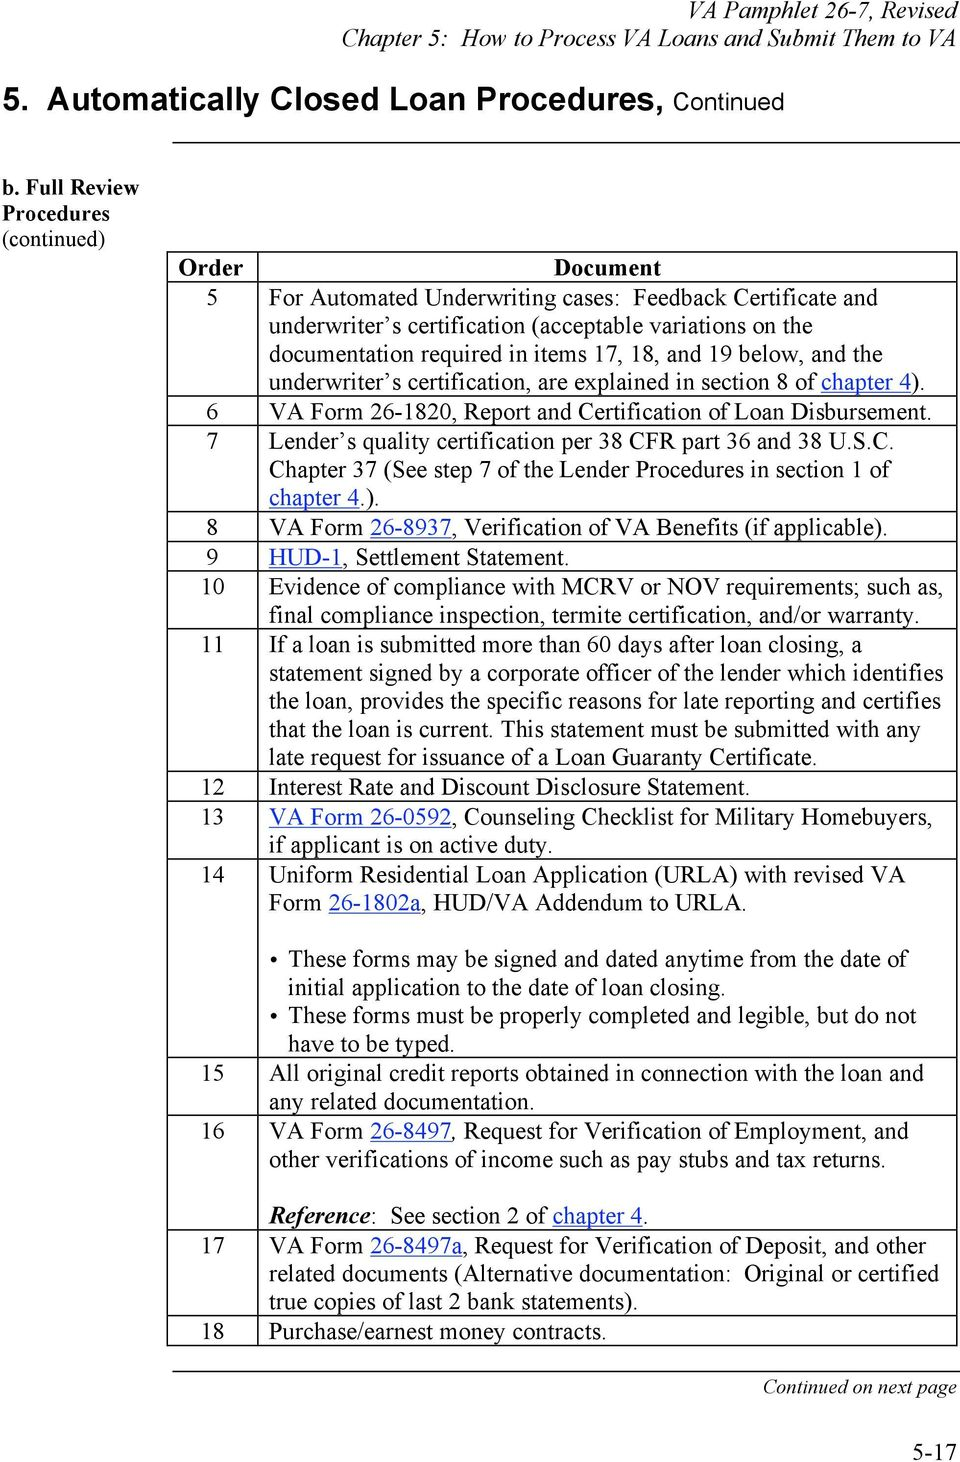 Chapter 5 How To Process Va Loans And Submit Them To Va Overview Pdf